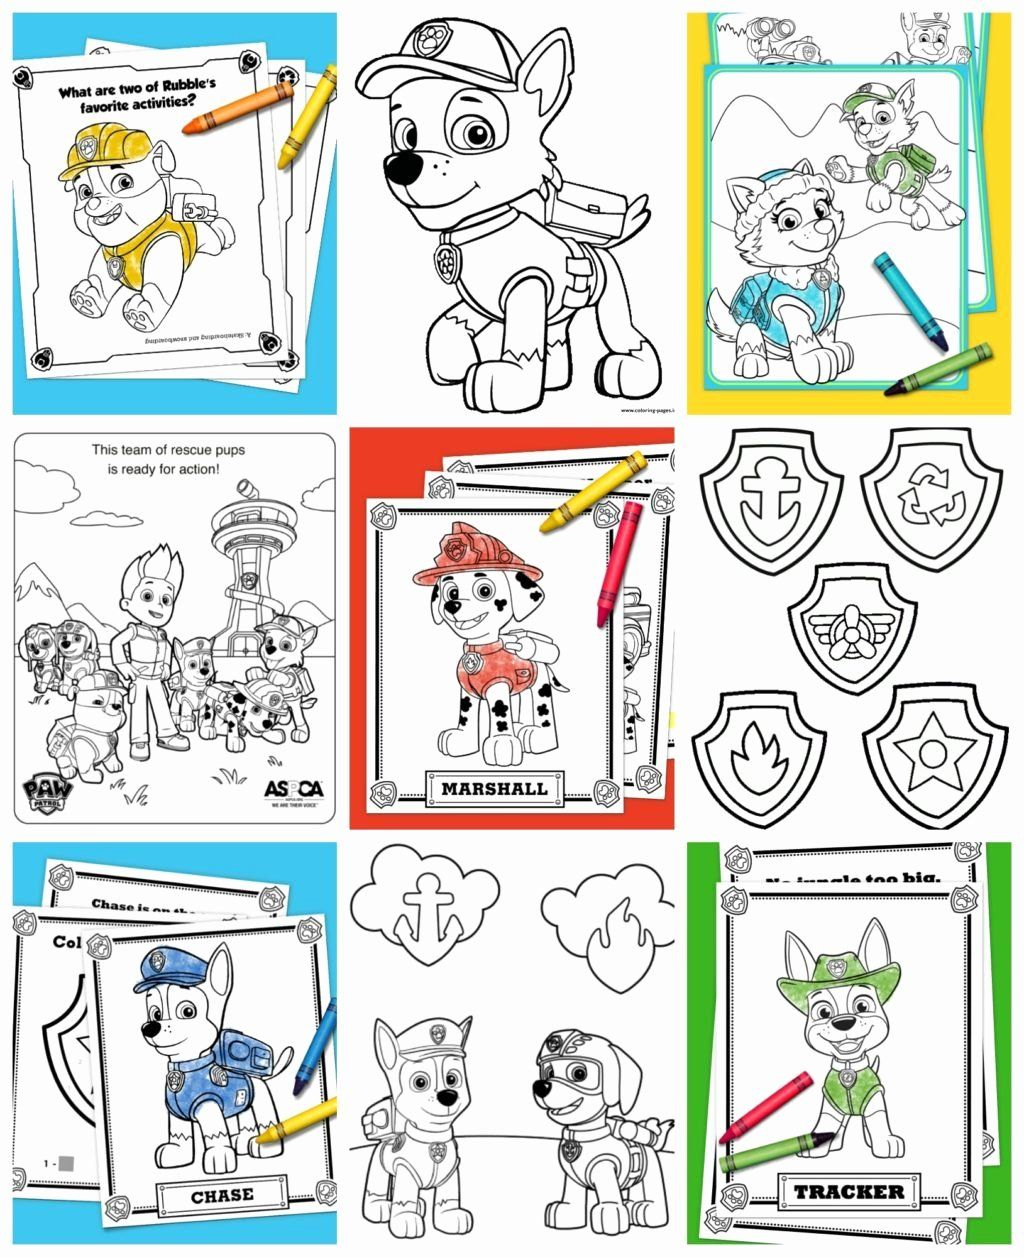 Nick Jr Coloring Book Luxury Coloring Pages Nick Jr Printable Coloring Book Books Sea Paw Patrol Coloring Pages Coloring Pages For Kids Paw Patrol Coloring